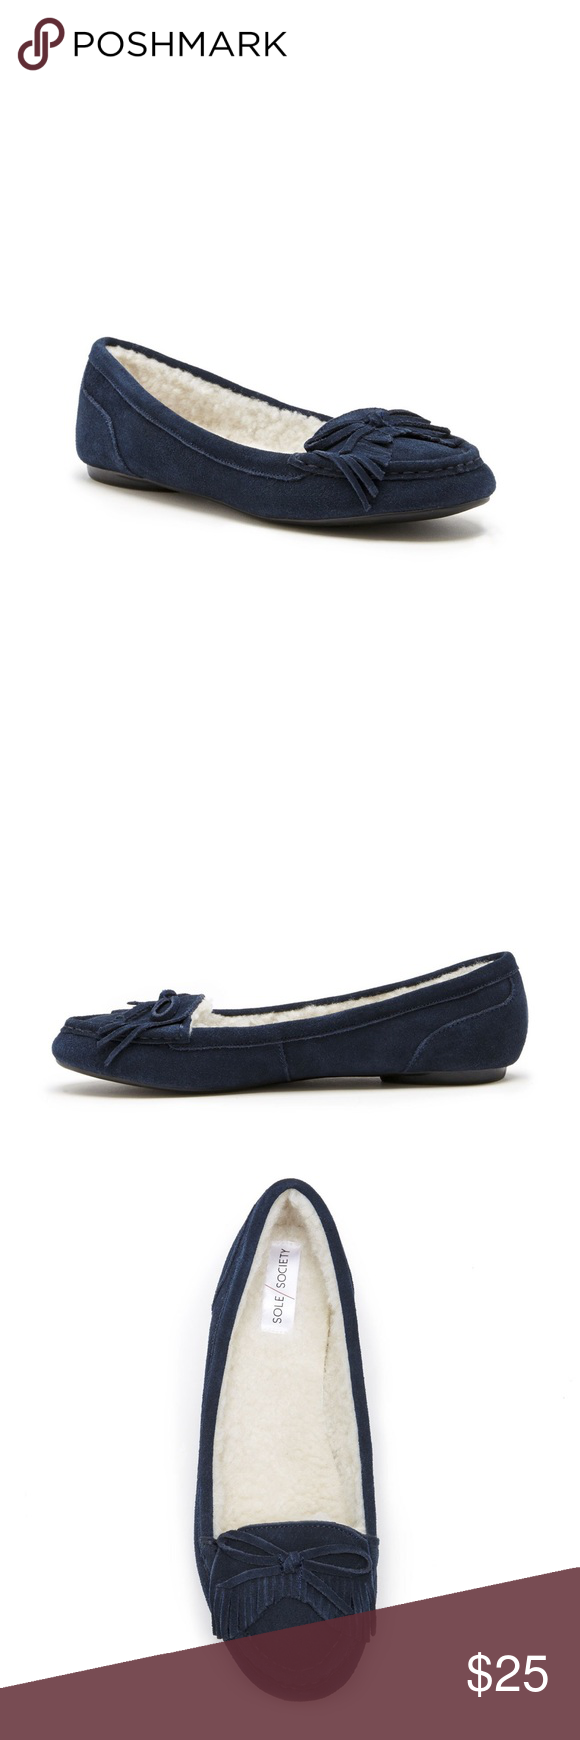 Sole Society Pari Moccasin, Size 7 Sole Society Pari Moccasin in Navy Suede, Size 7. Never worn, but no box available. Sole Society Shoes Moccasins